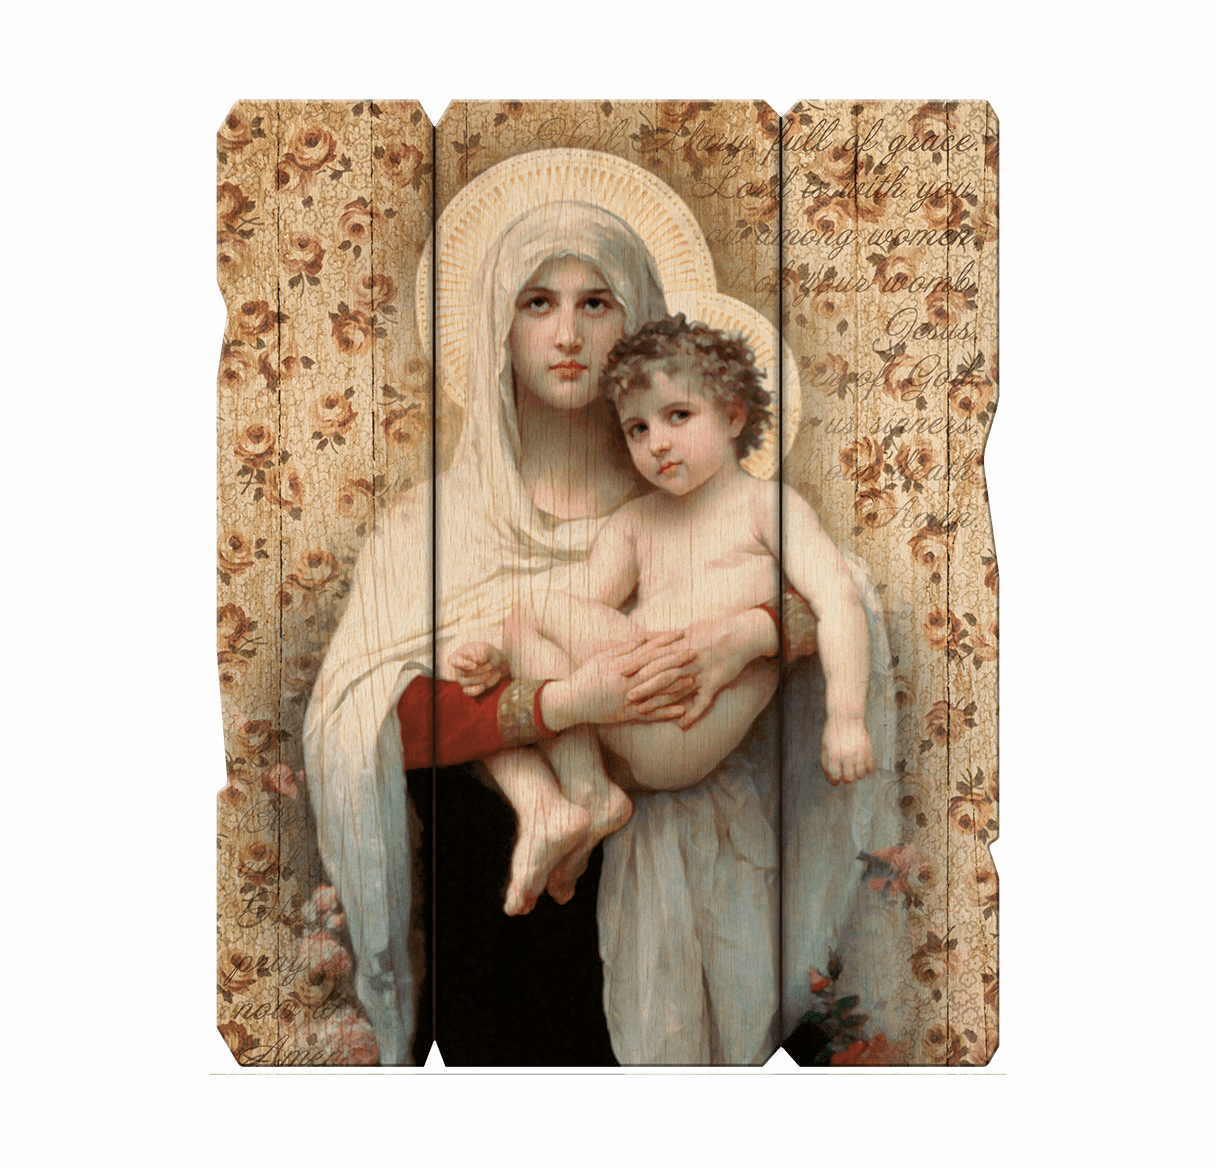 Hirten Bouguereau Madonna of the Roses Vintage Wall Plaque